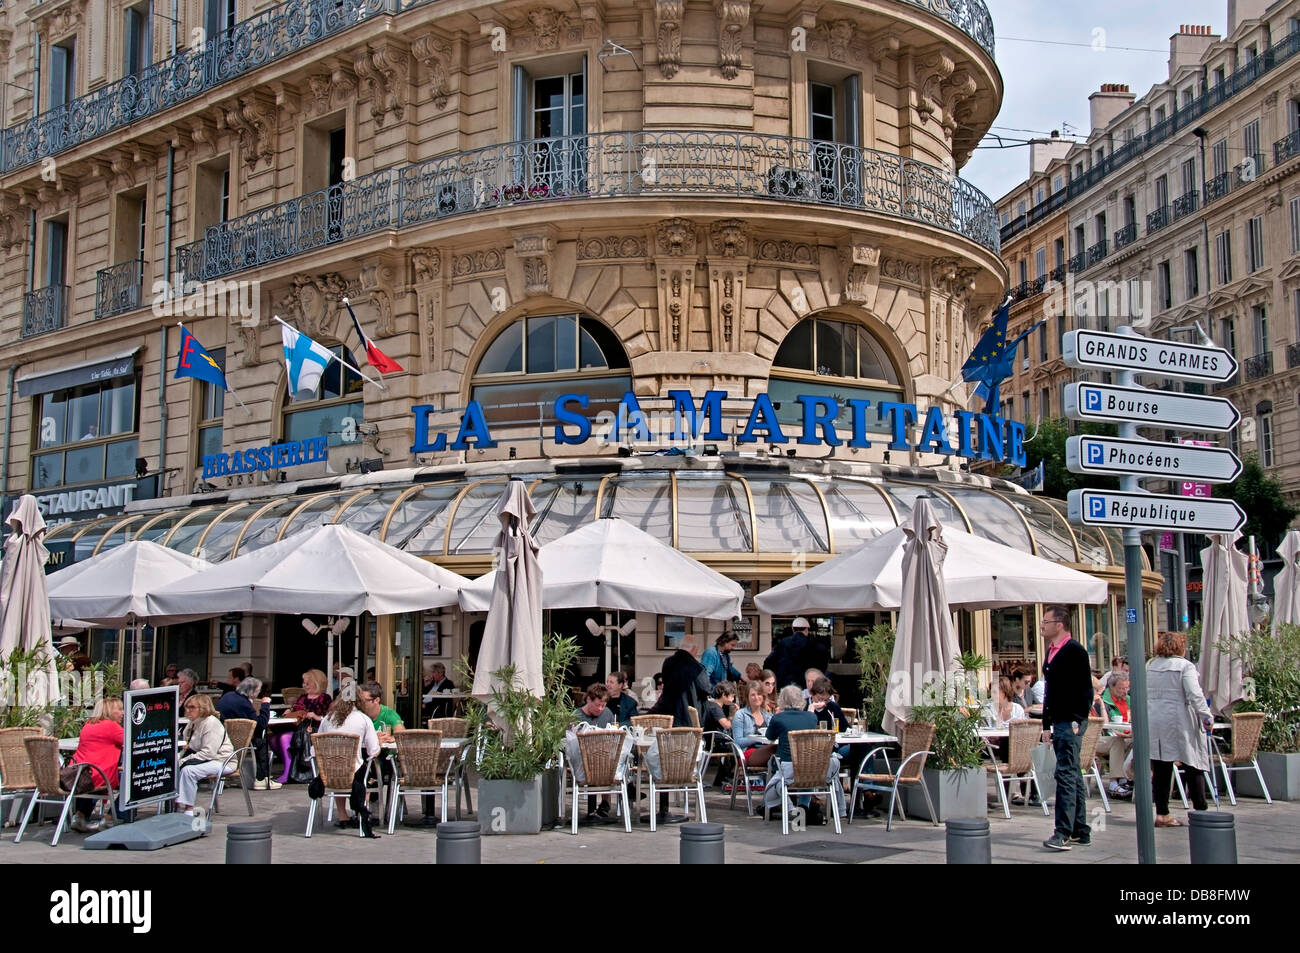 La samaritaine restaurant cafe bar pub marseilles france - Restaurant le vieux port marseille ...